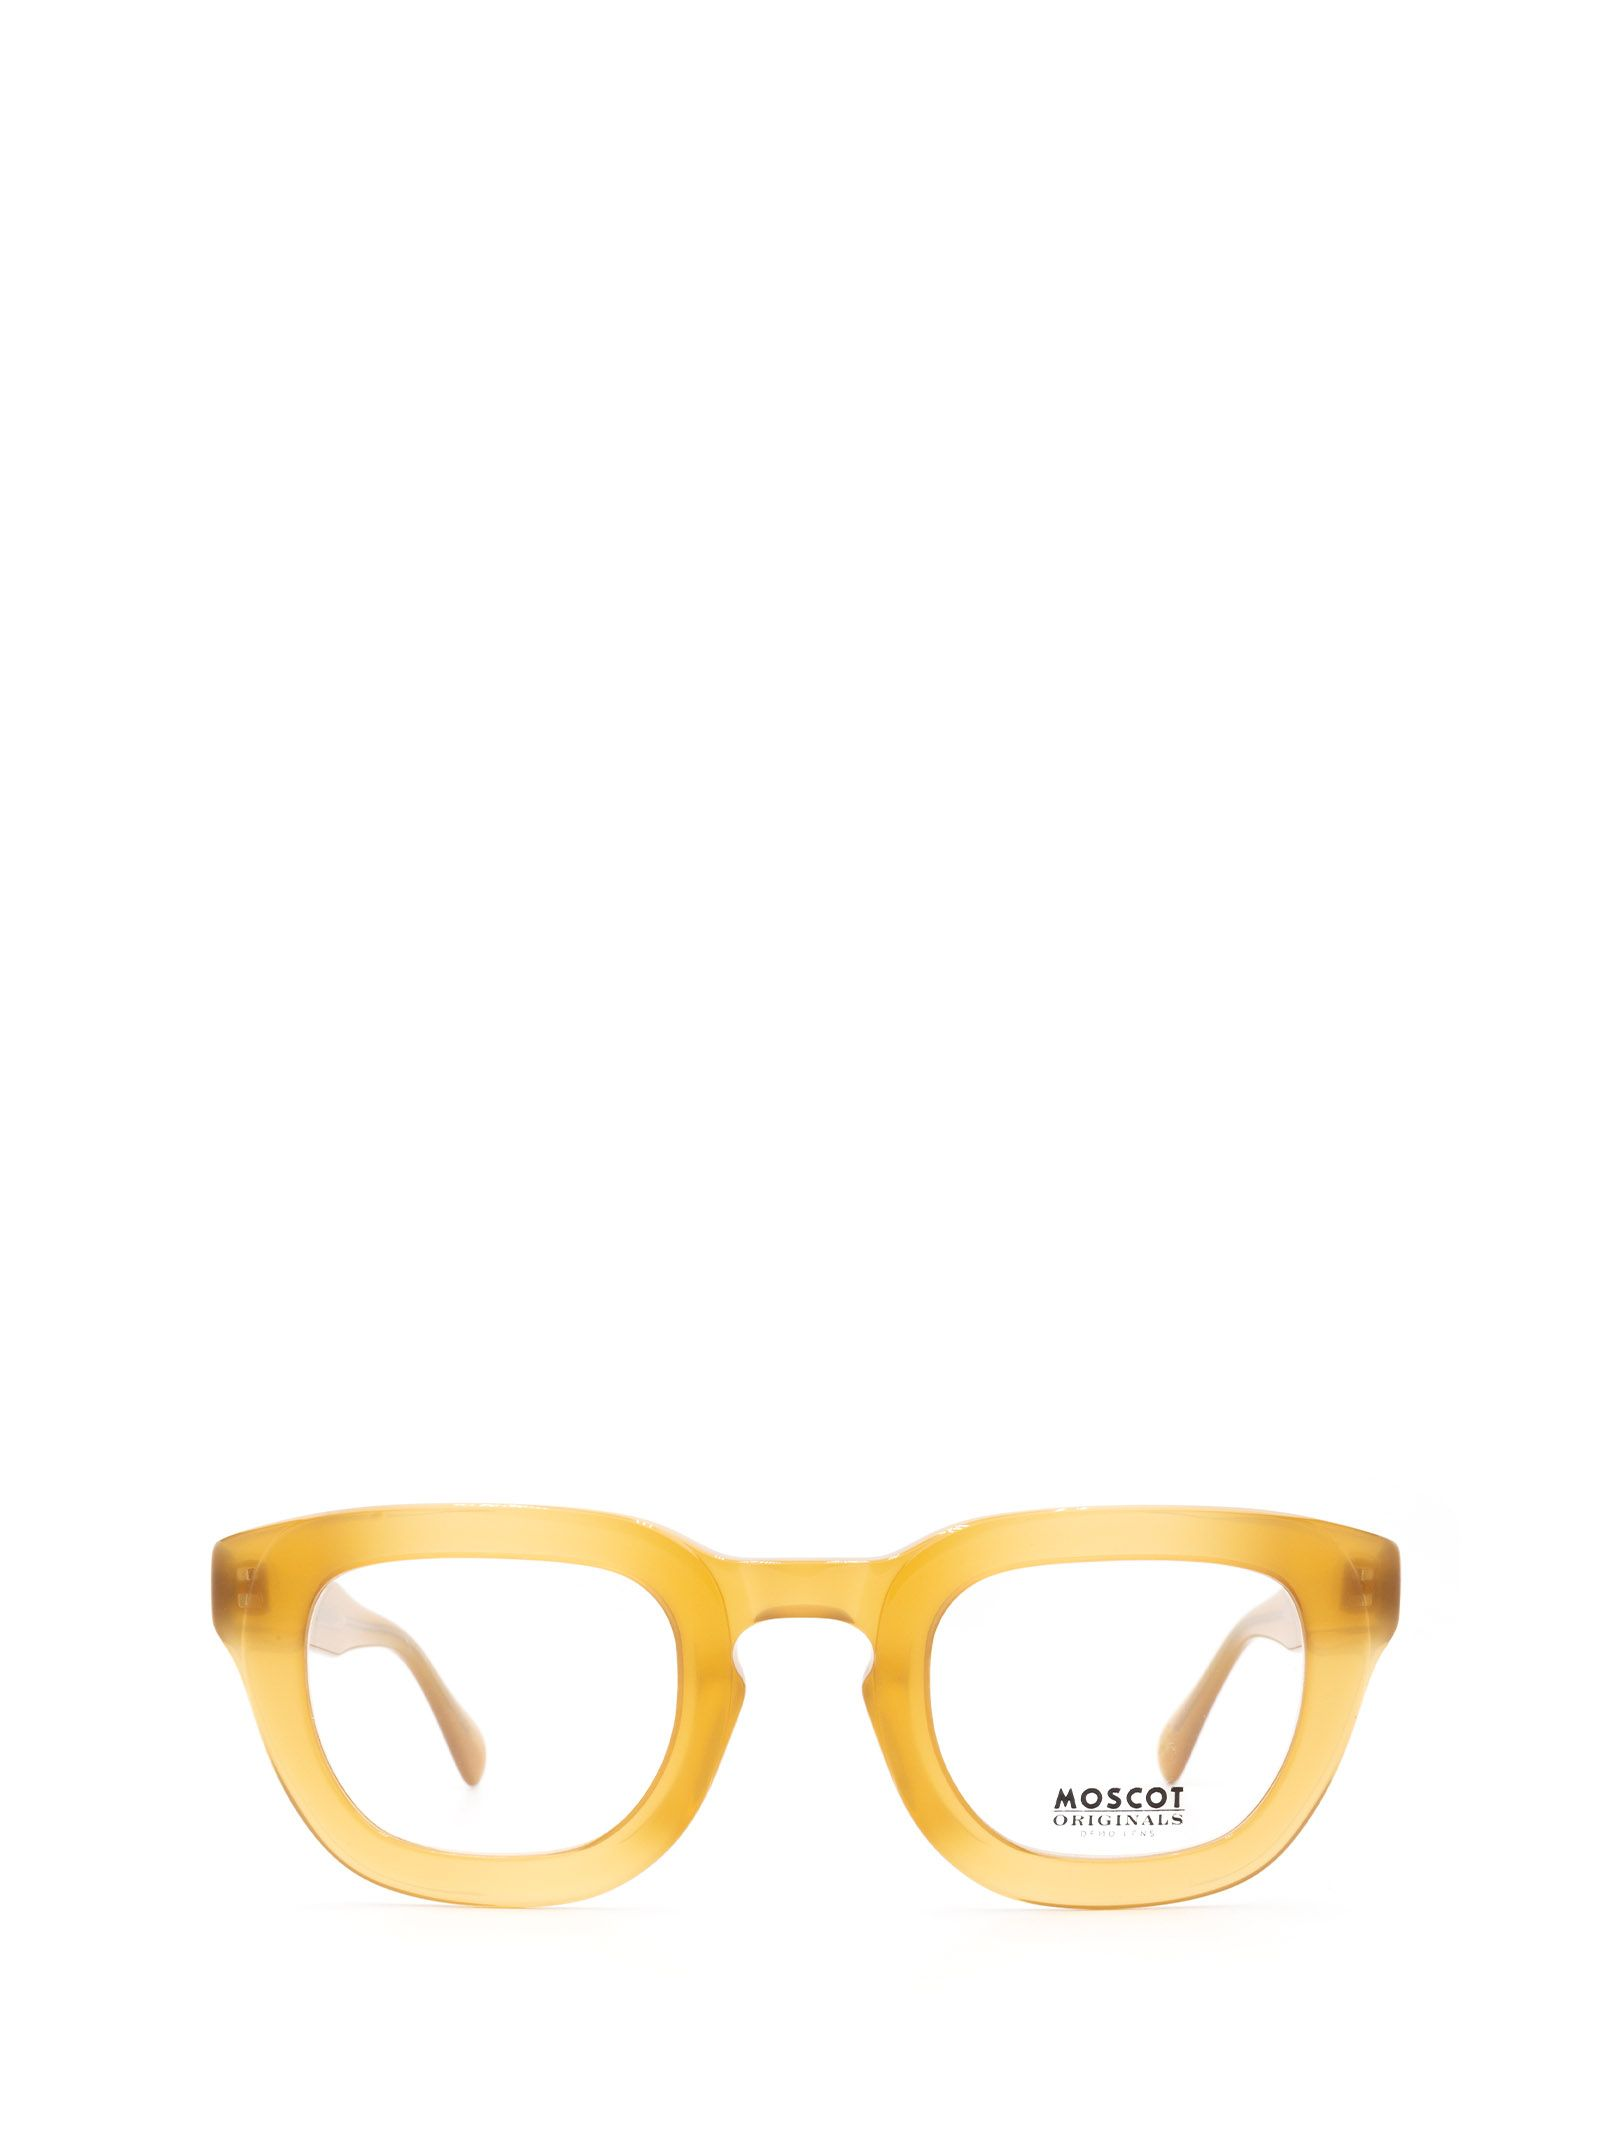 Moscot MOSCOT WOMEN'S YELLOW METAL GLASSES